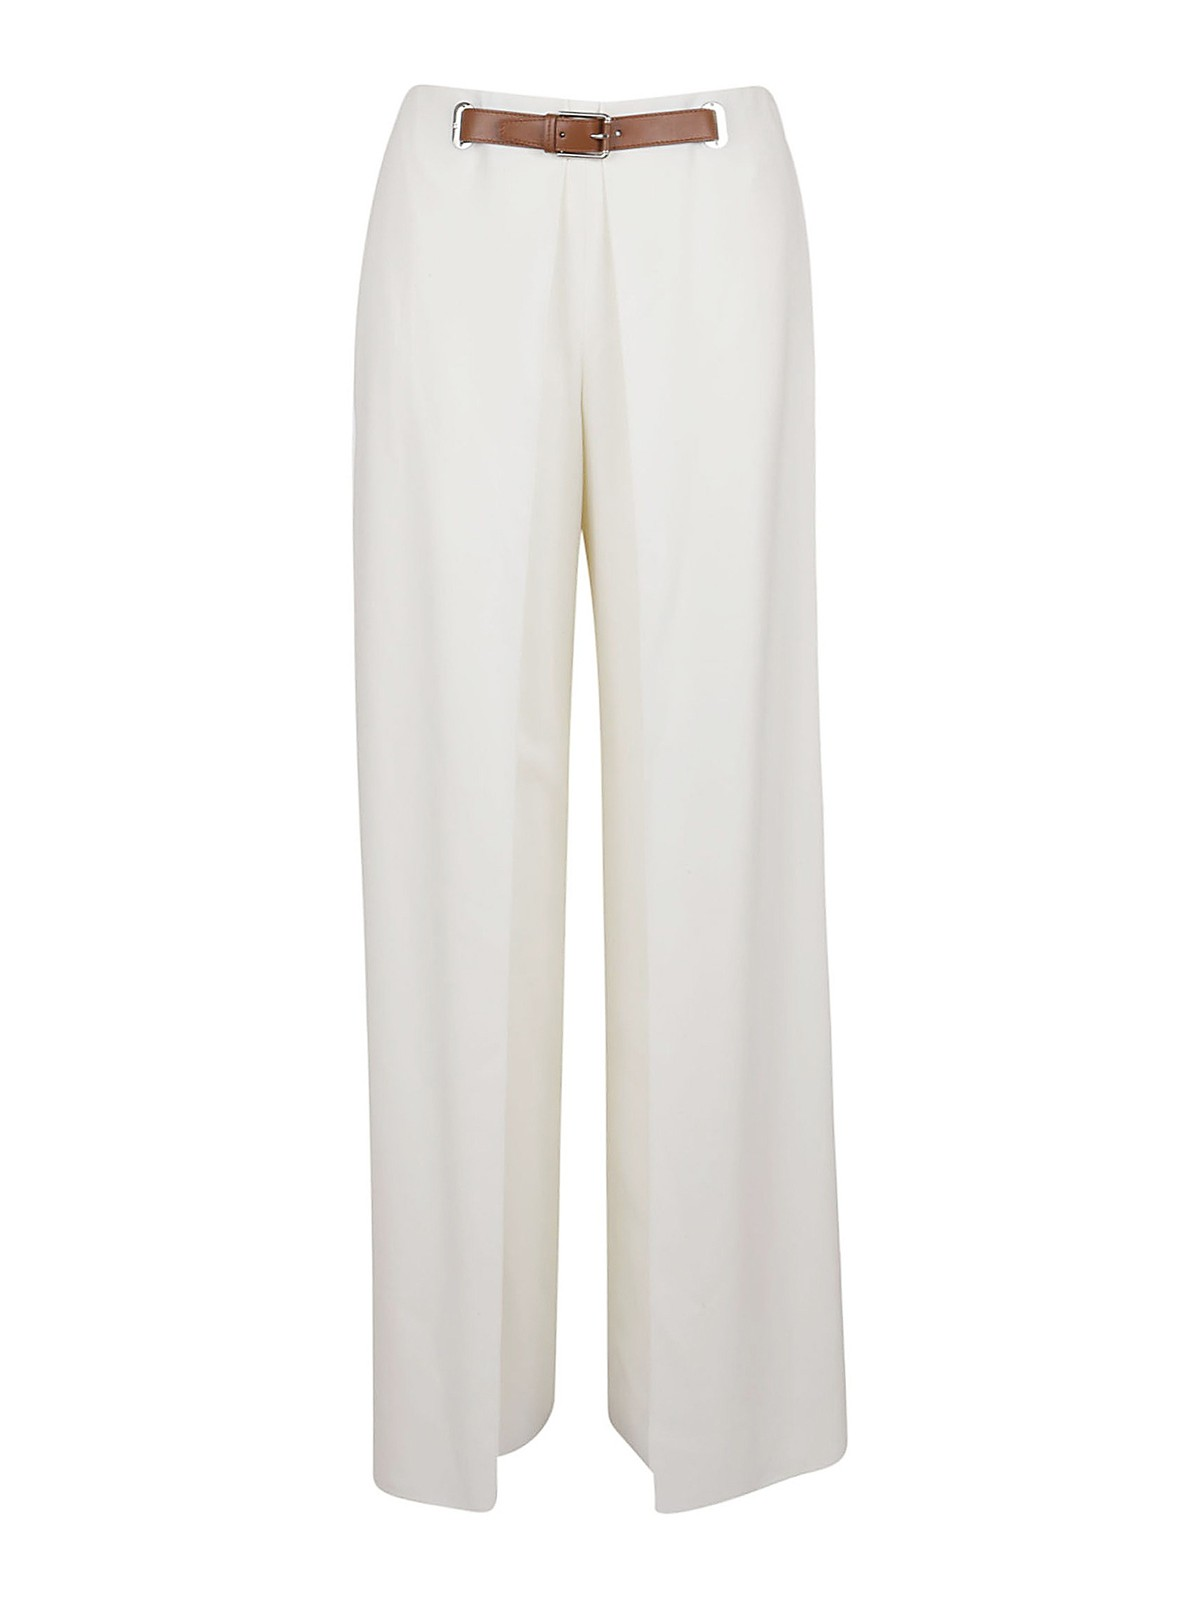 Ralph Lauren KIMBERLY TROUSERS